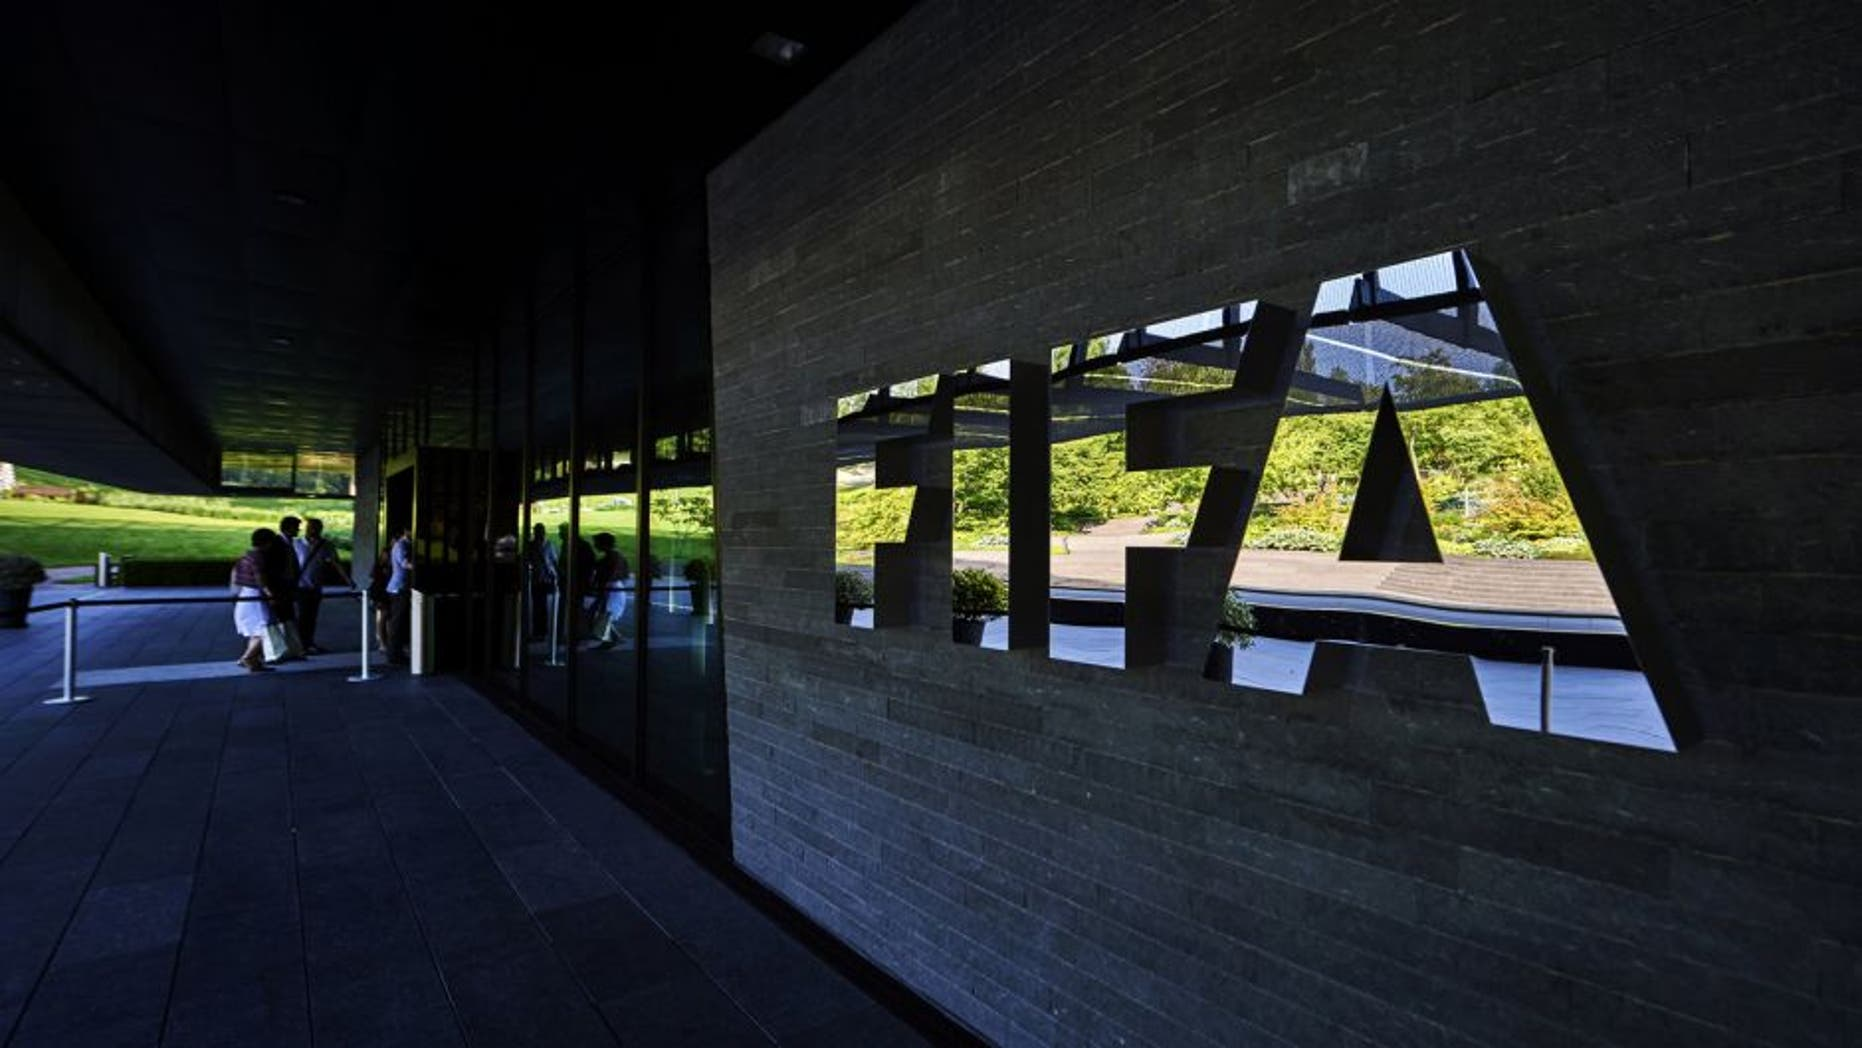 FIFA employees enter at the FIFA headquarters on June 3, 2015 in Zurich. Blatter resigned on June 2, 2015 as president of FIFA as a mounting corruption scandal engulfed world football's governing body. The 79-year-old Swiss official, FIFA president for 17 years and only reelected on May 29, said a special congress would be called as soon as possible to elect a successor. AFP PHOTO / MICHAEL BUHOLZER (Photo credit should read MICHAEL BUHOLZER/AFP/Getty Images)